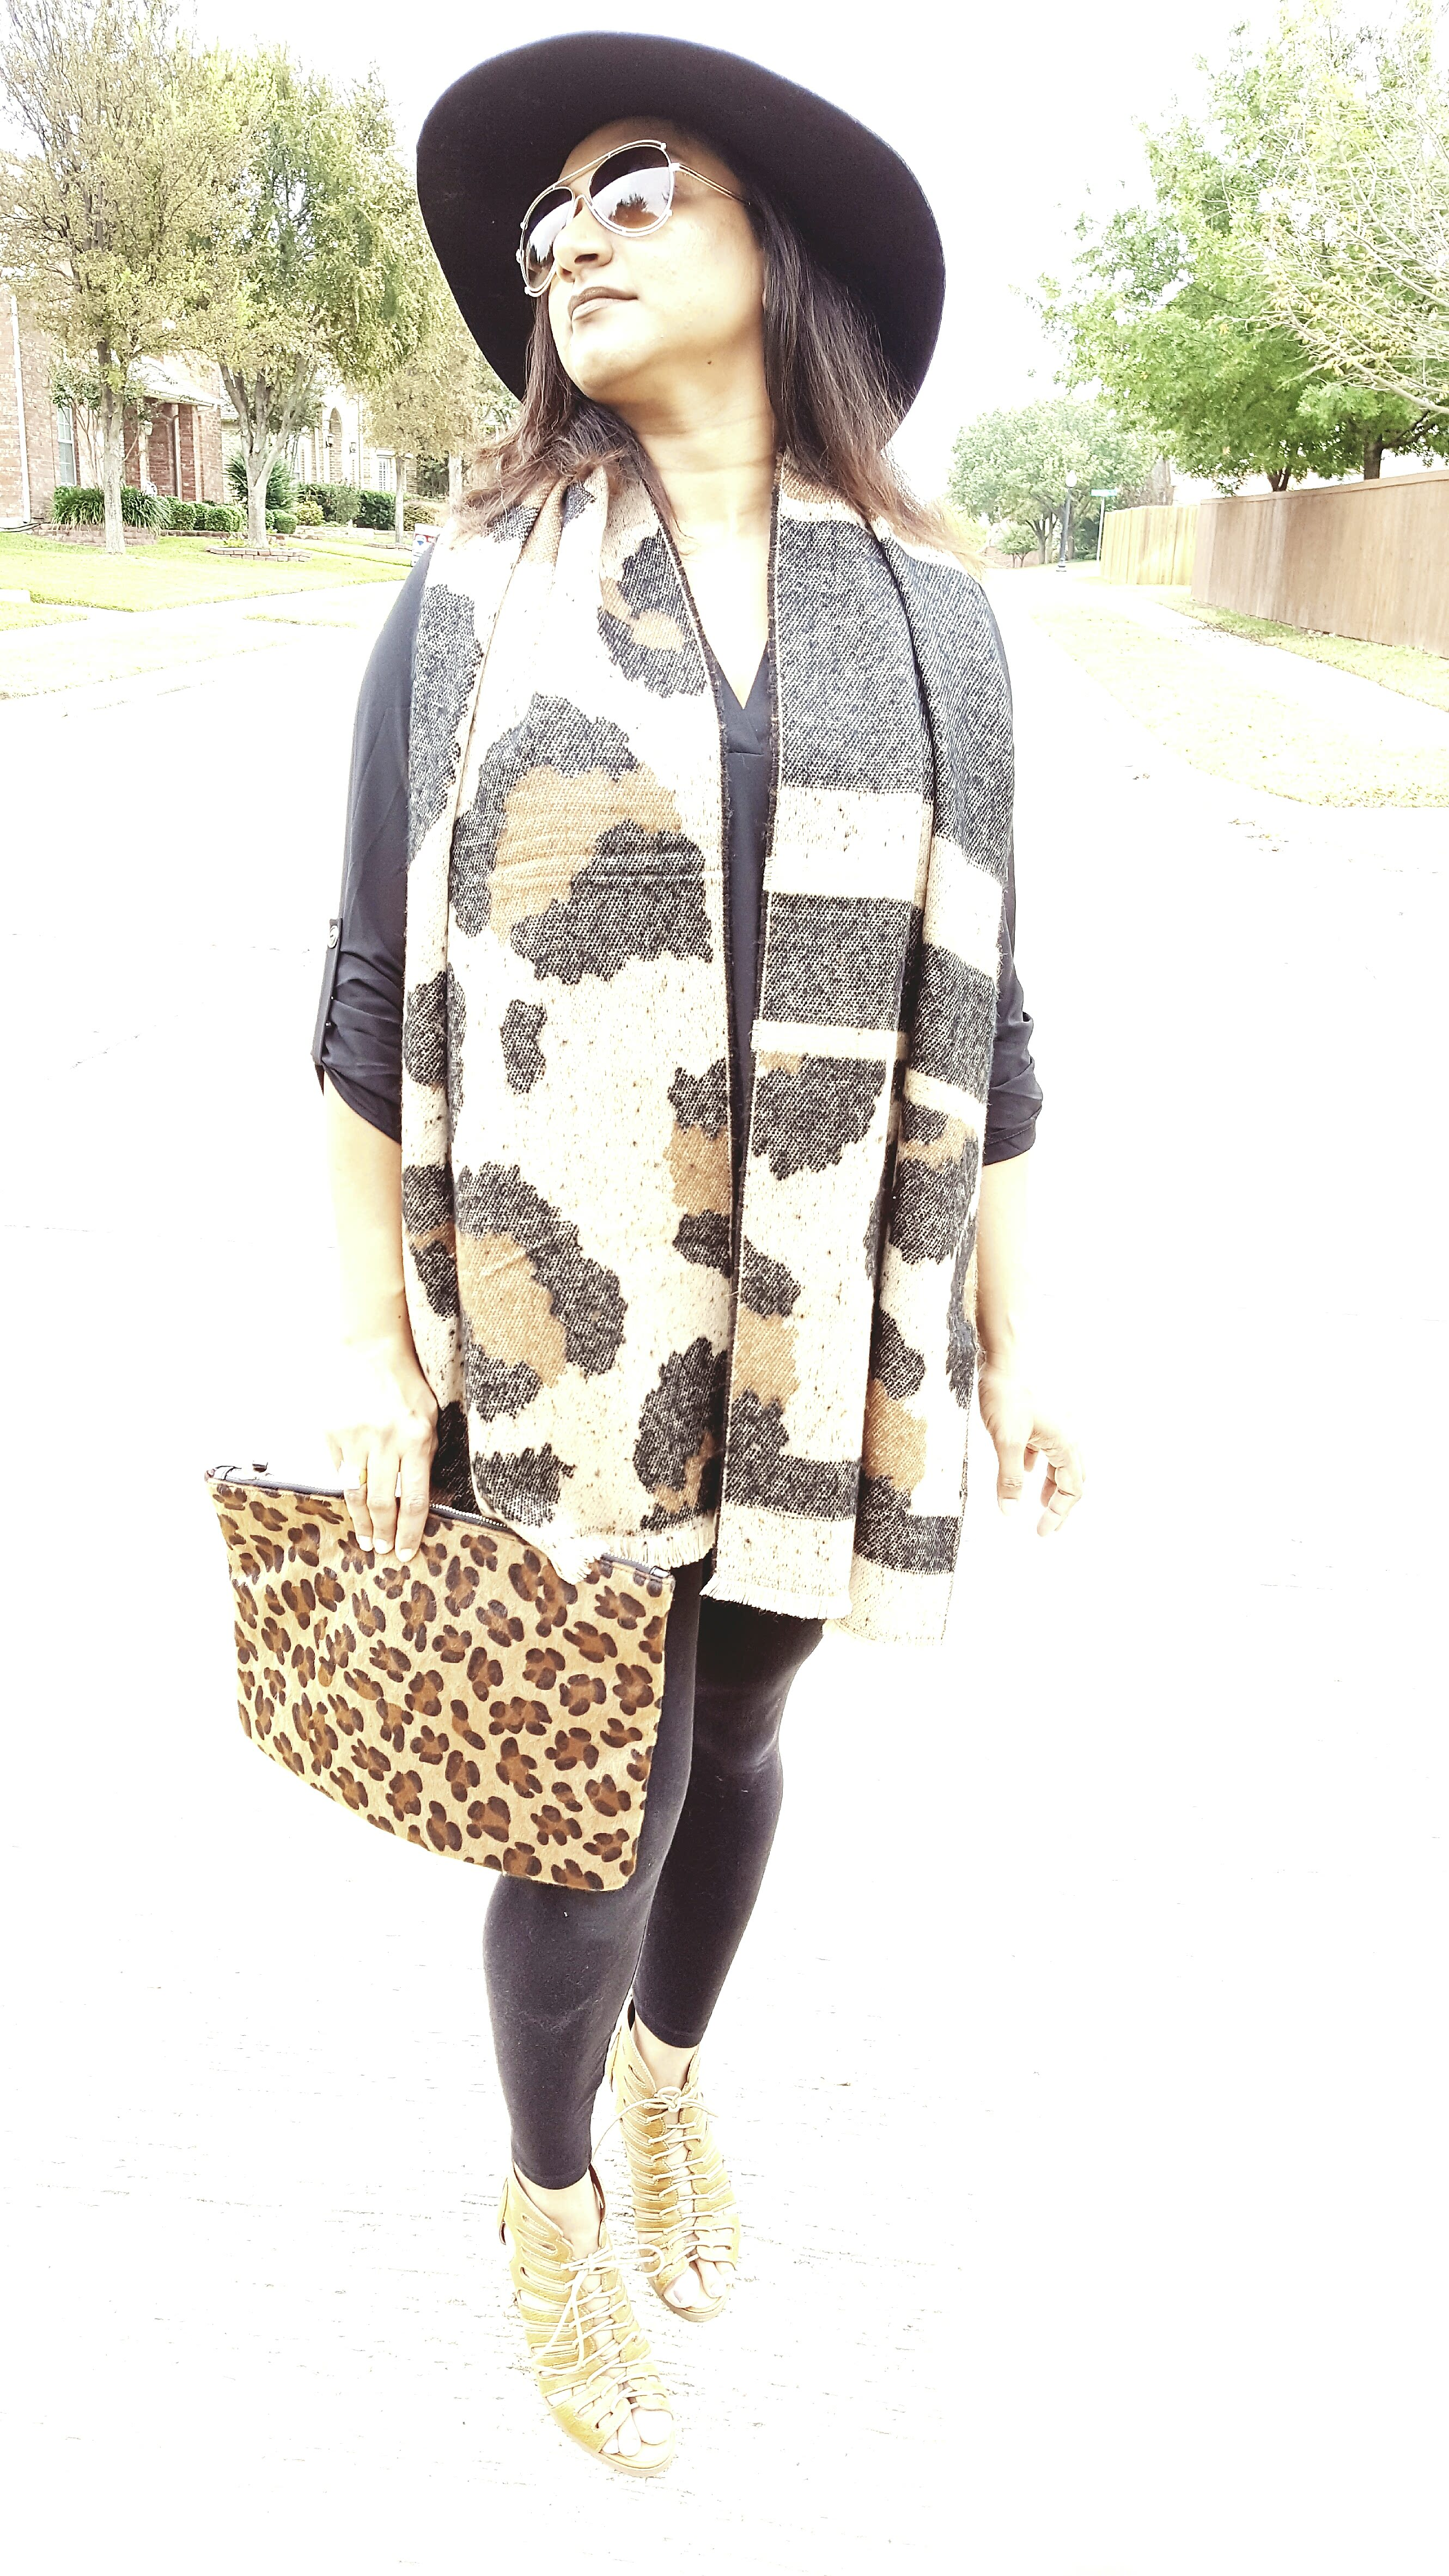 Black Outfit And Leopard Accessories Fashion Beauty Decor